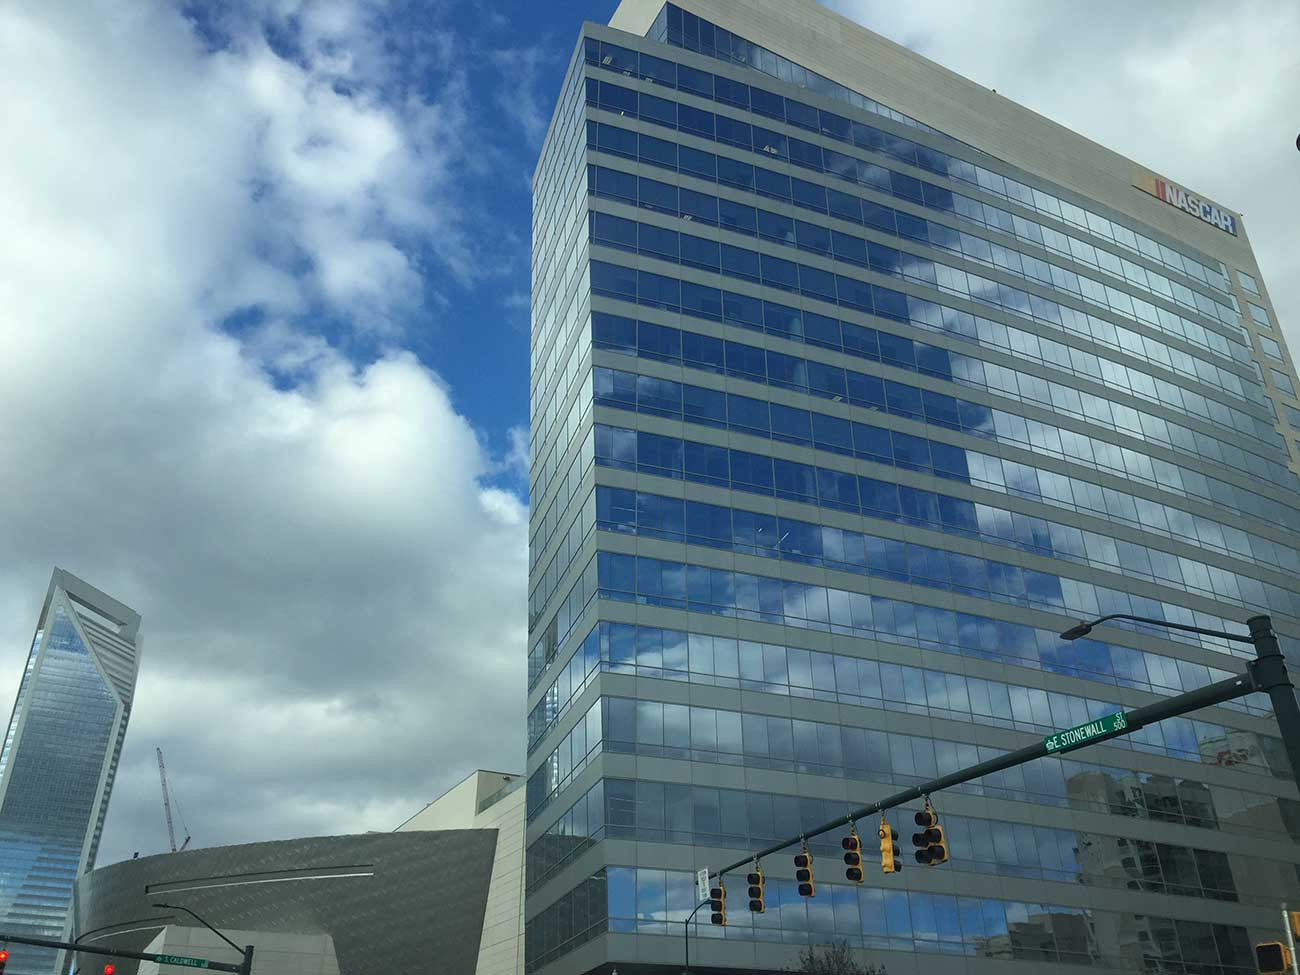 The Charlotte Observer is likely moving to NASCAR Plaza